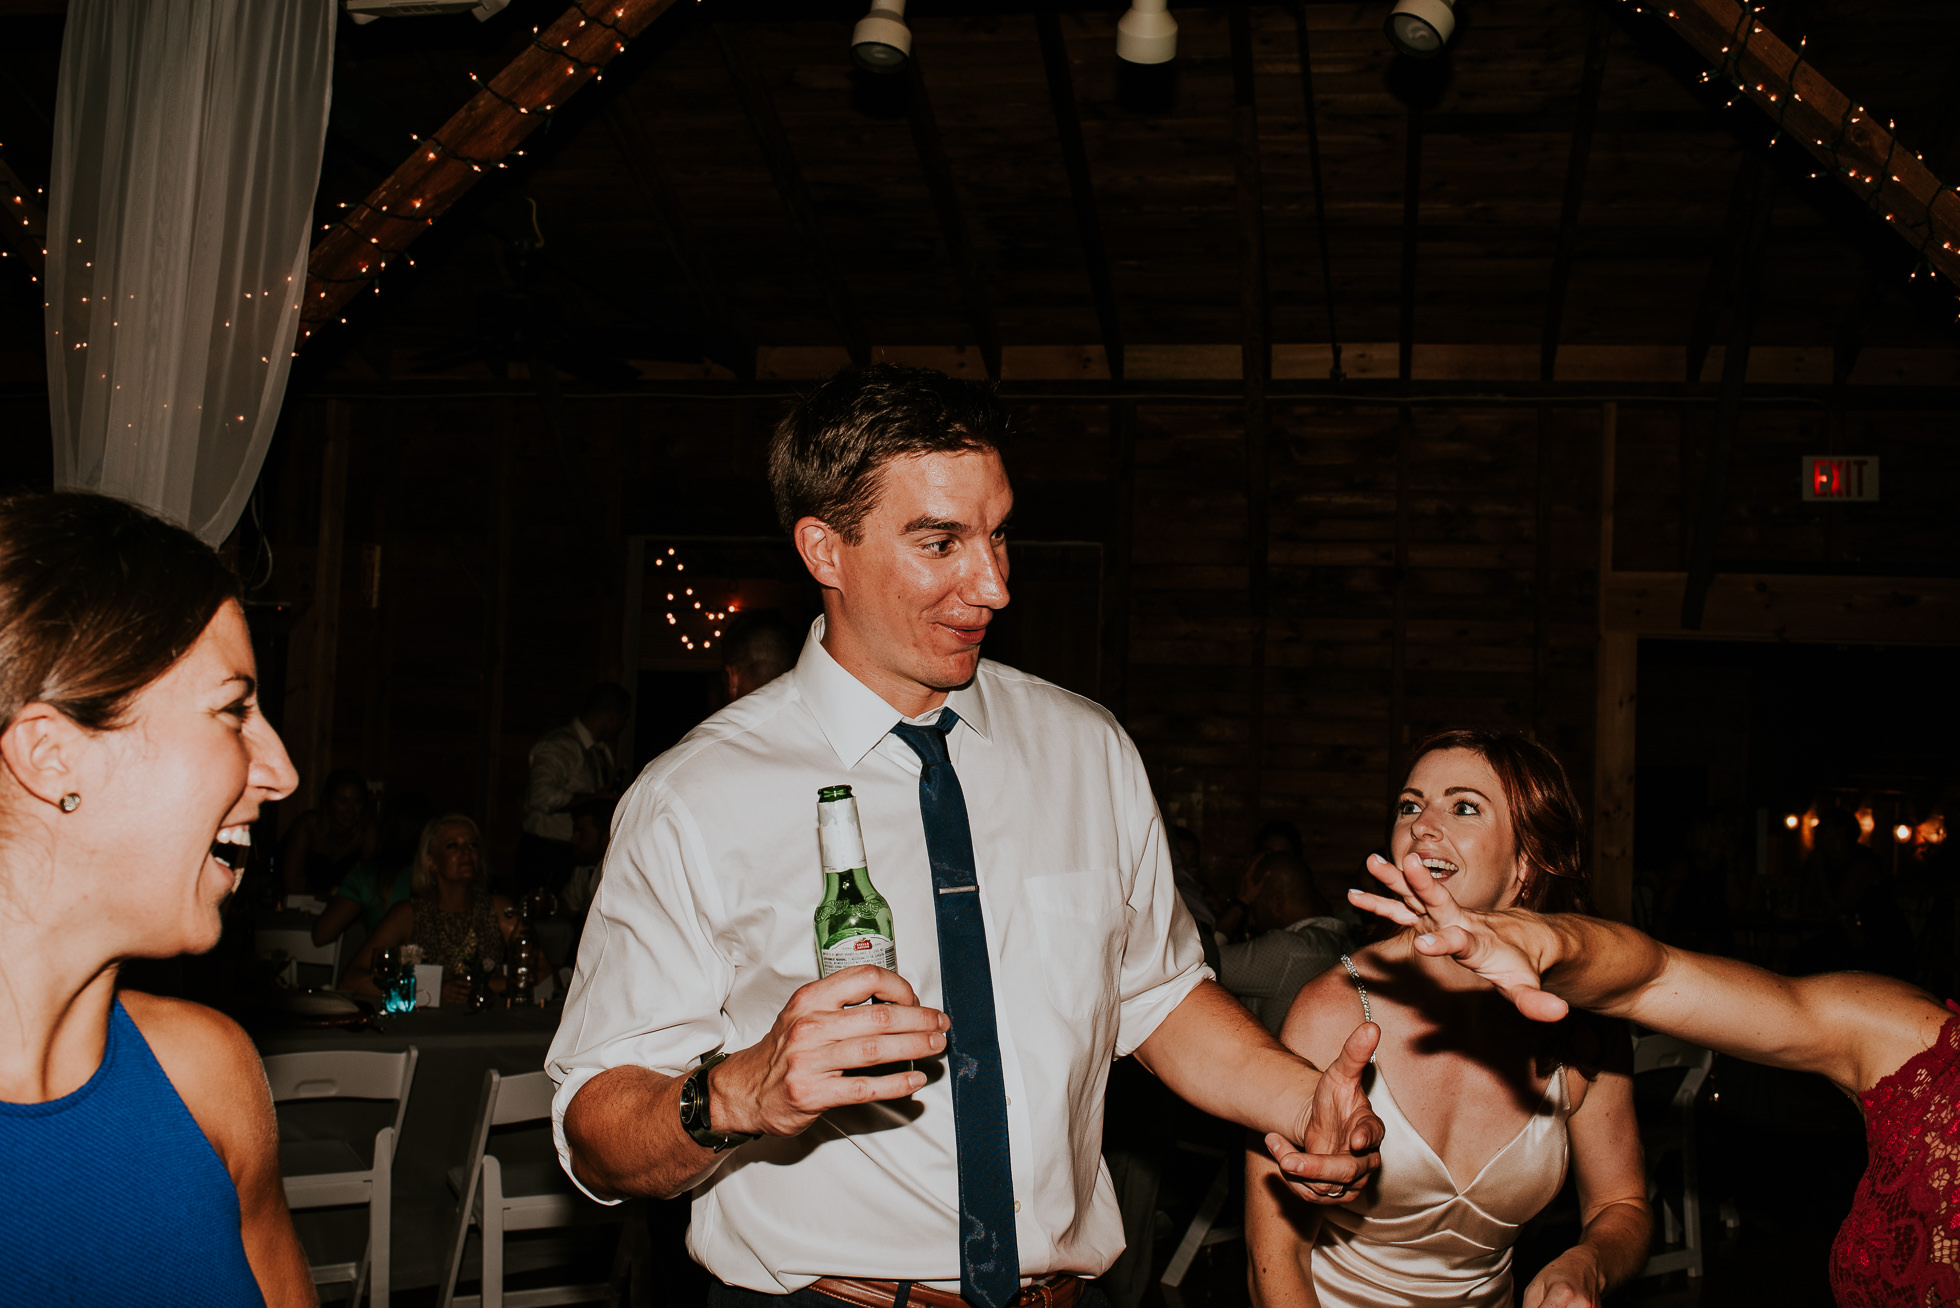 groom dancing at olde tater barn wedding in central bridge, ny photographed by traverse the tides